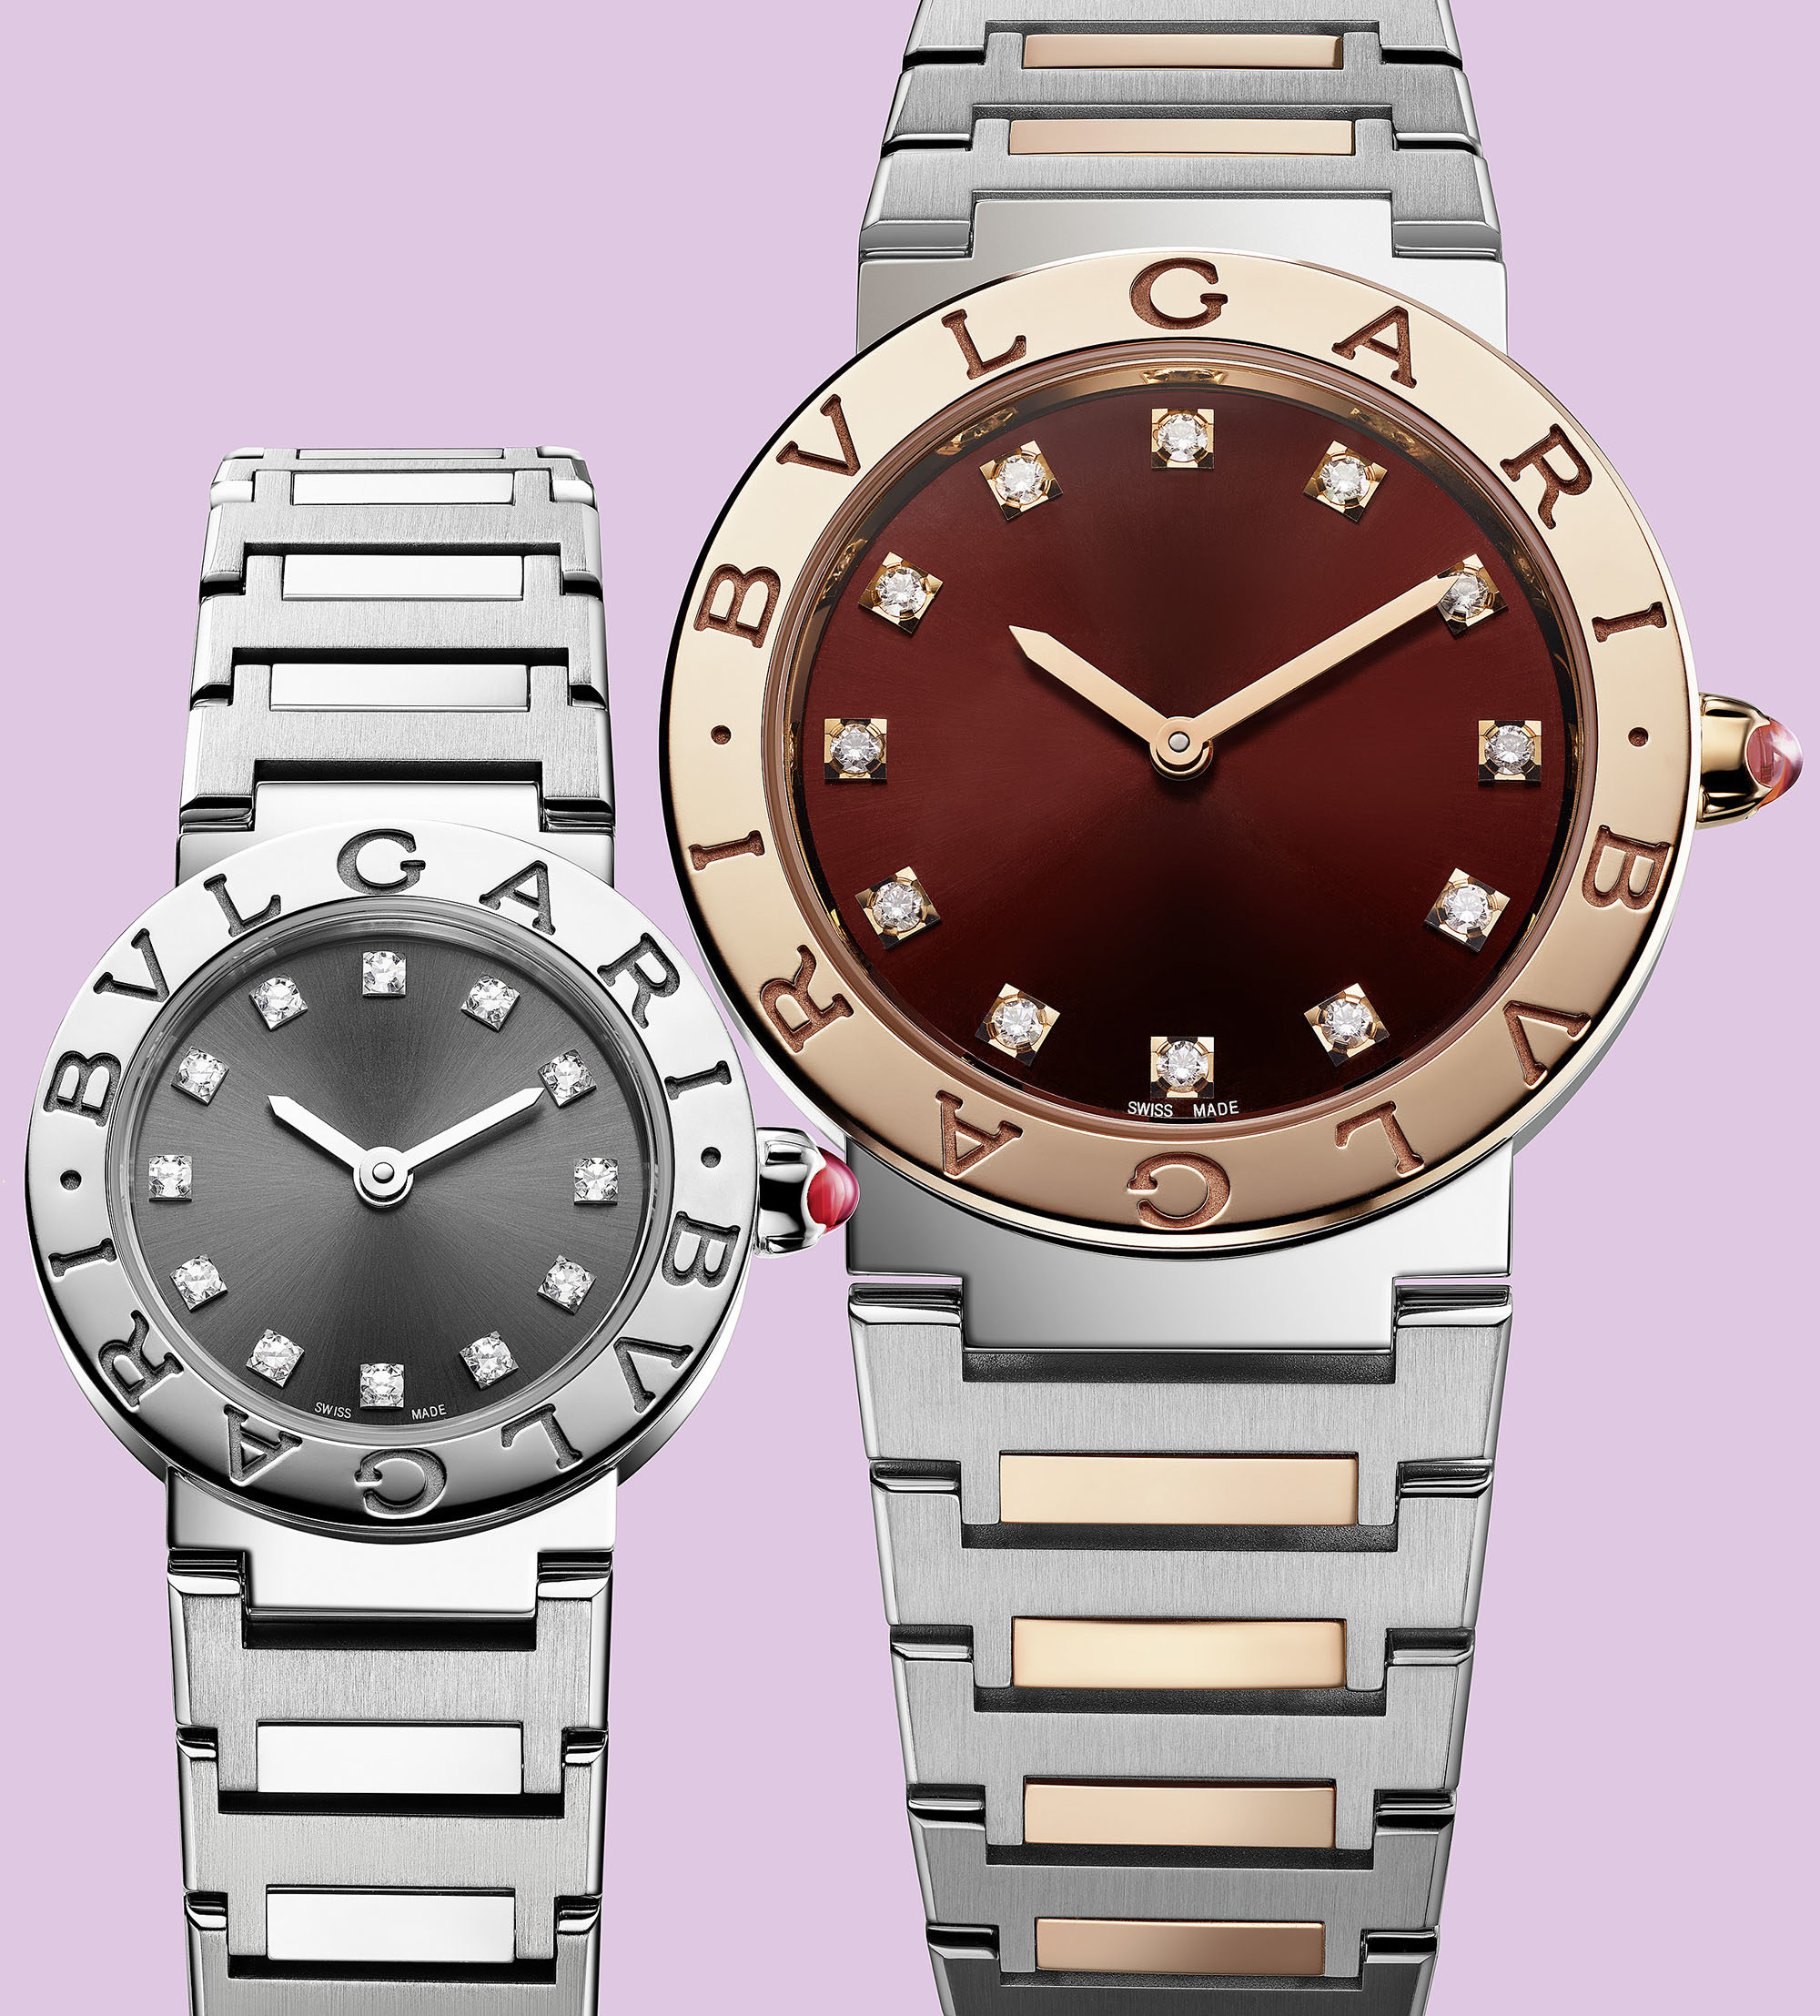 9b173f34e4a62 The dials come in several refined yet contemporary executions bearing  applied or diamond hour-markers